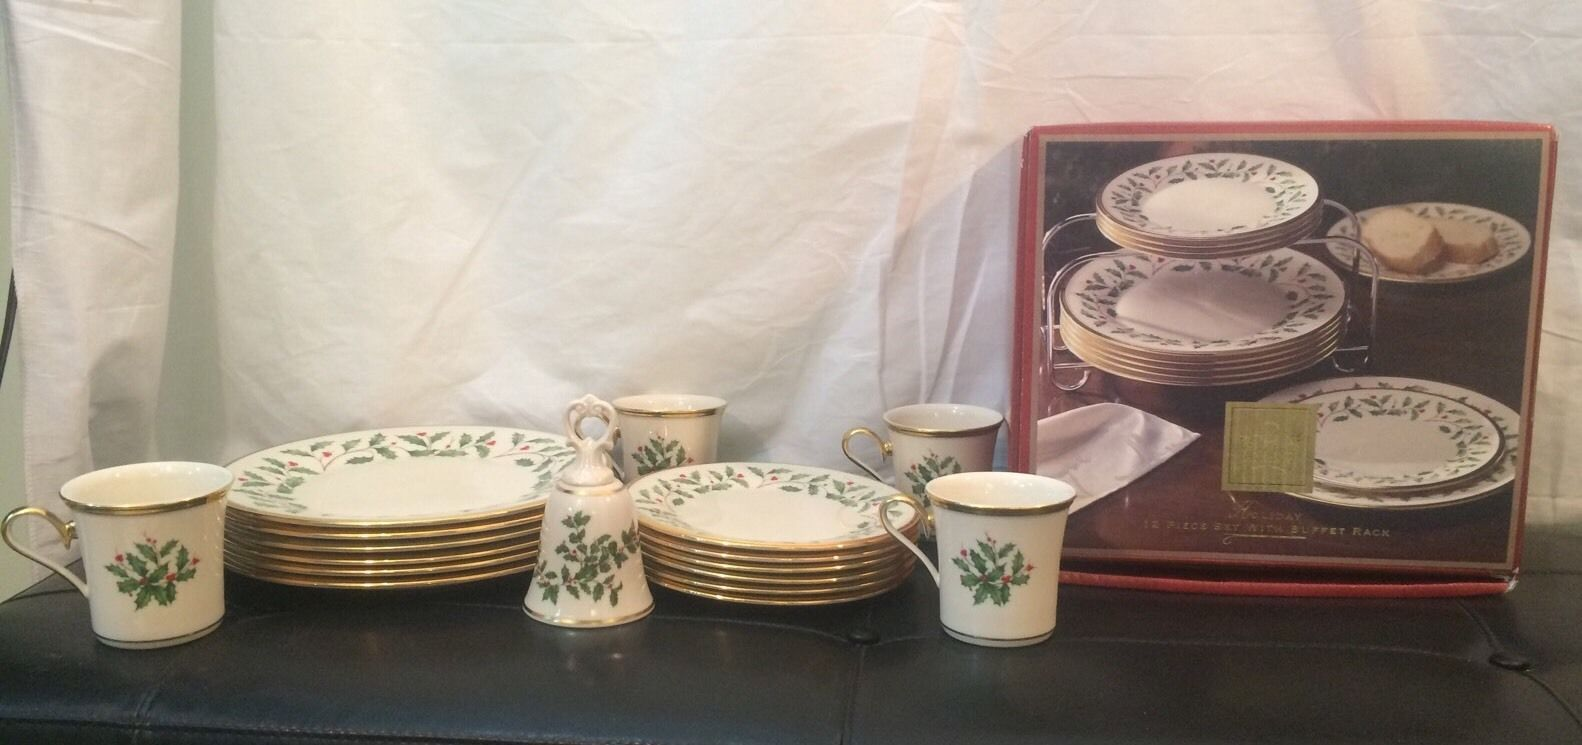 Huge Lot Lenox Holiday 12 Dinner Plates 12 Salad Plates 4 Cups Buffet Rack Bell & Huge Lot Lenox Holiday 12 Dinner Plates 12 and 50 similar items